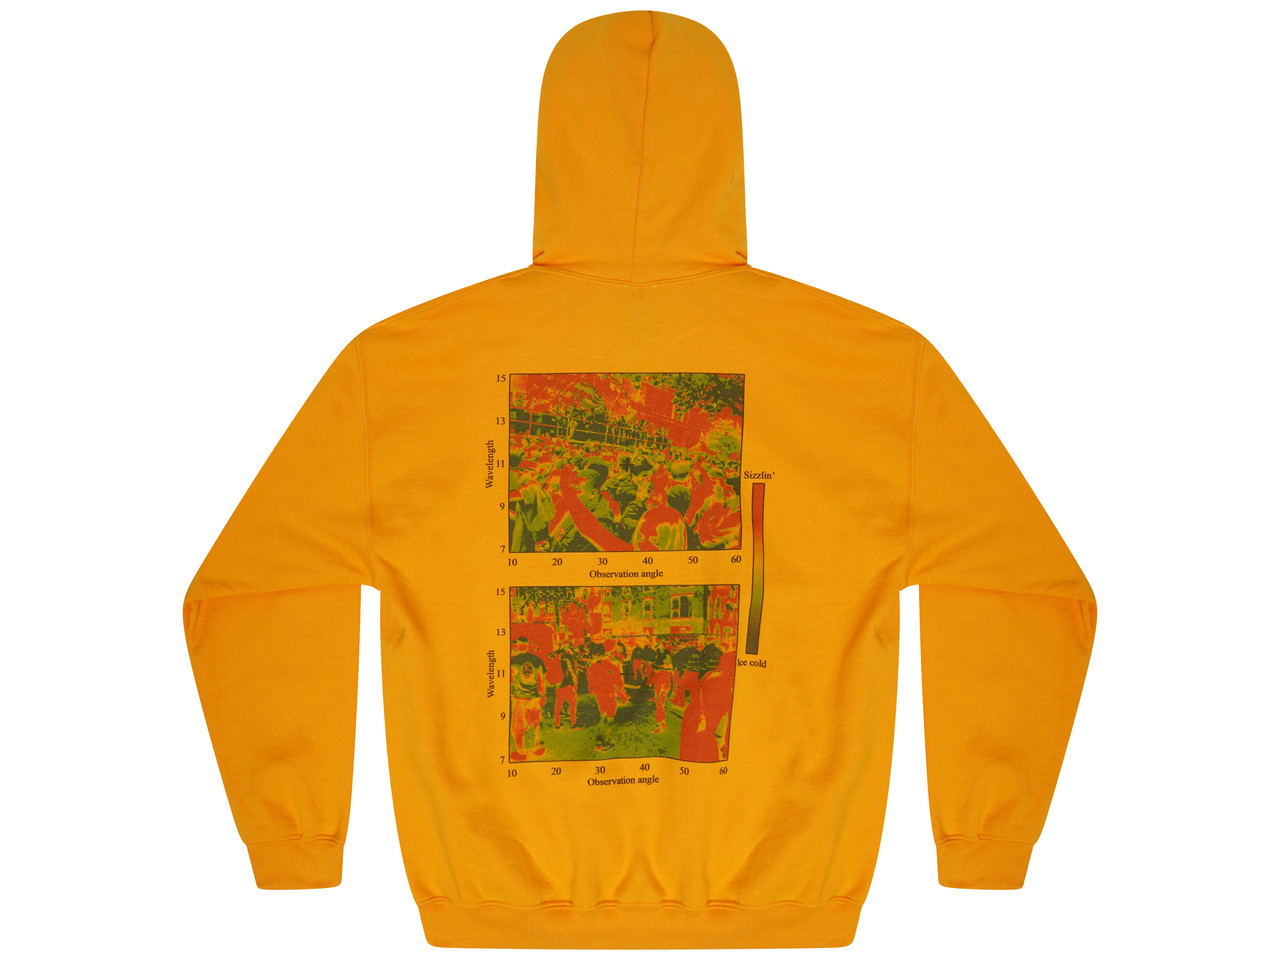 Gold Hoodie With Dream In Infrared Print